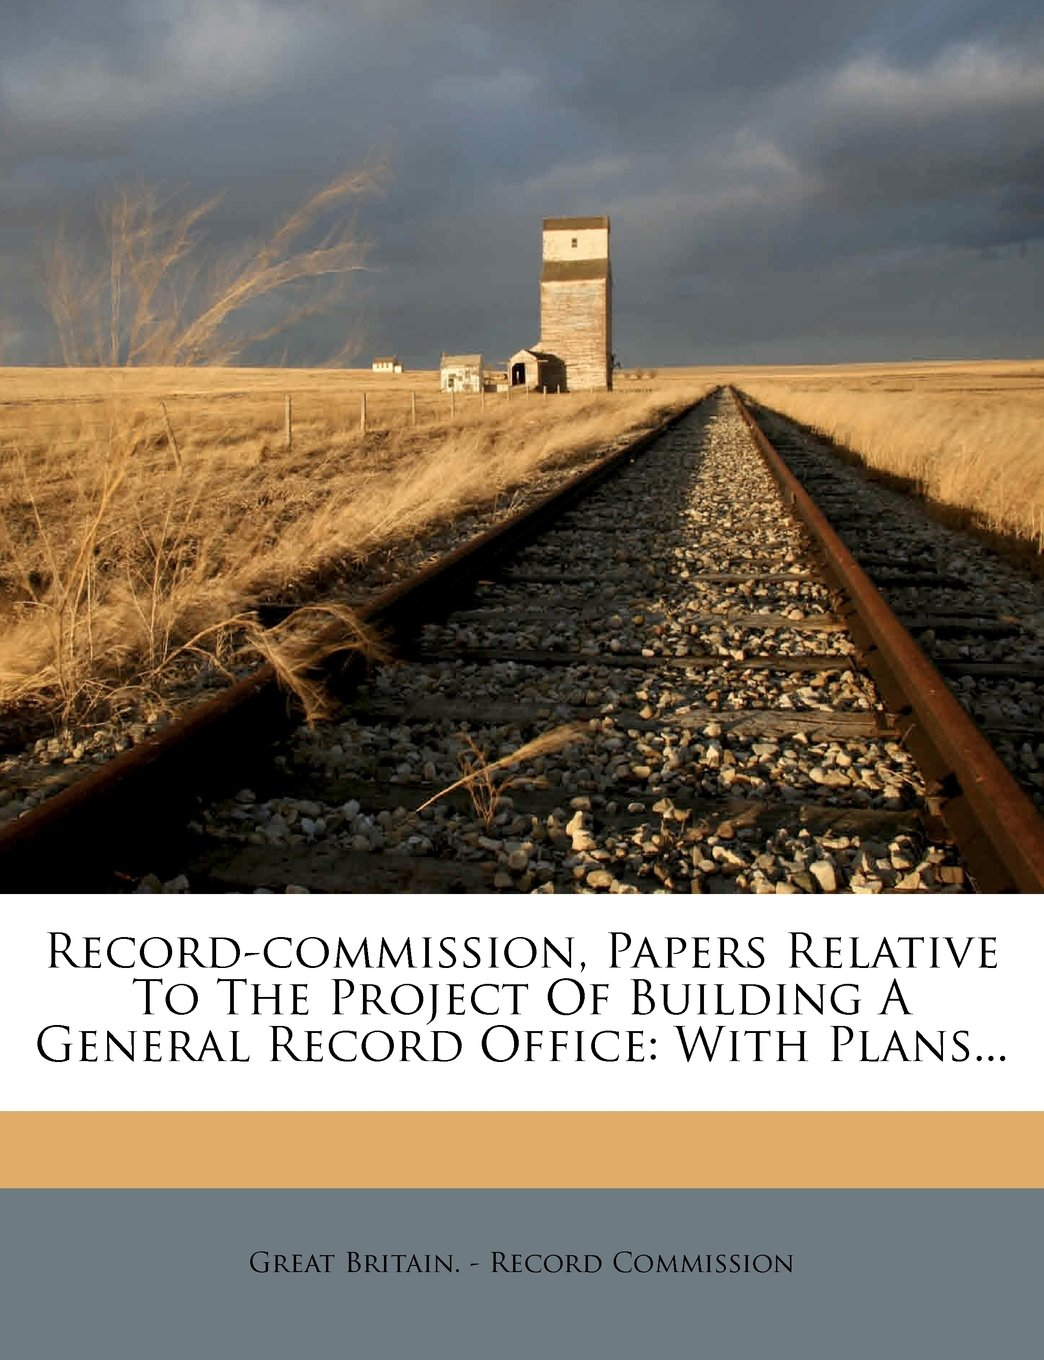 Download Record-commission, Papers Relative To The Project Of Building A General Record Office: With Plans... PDF